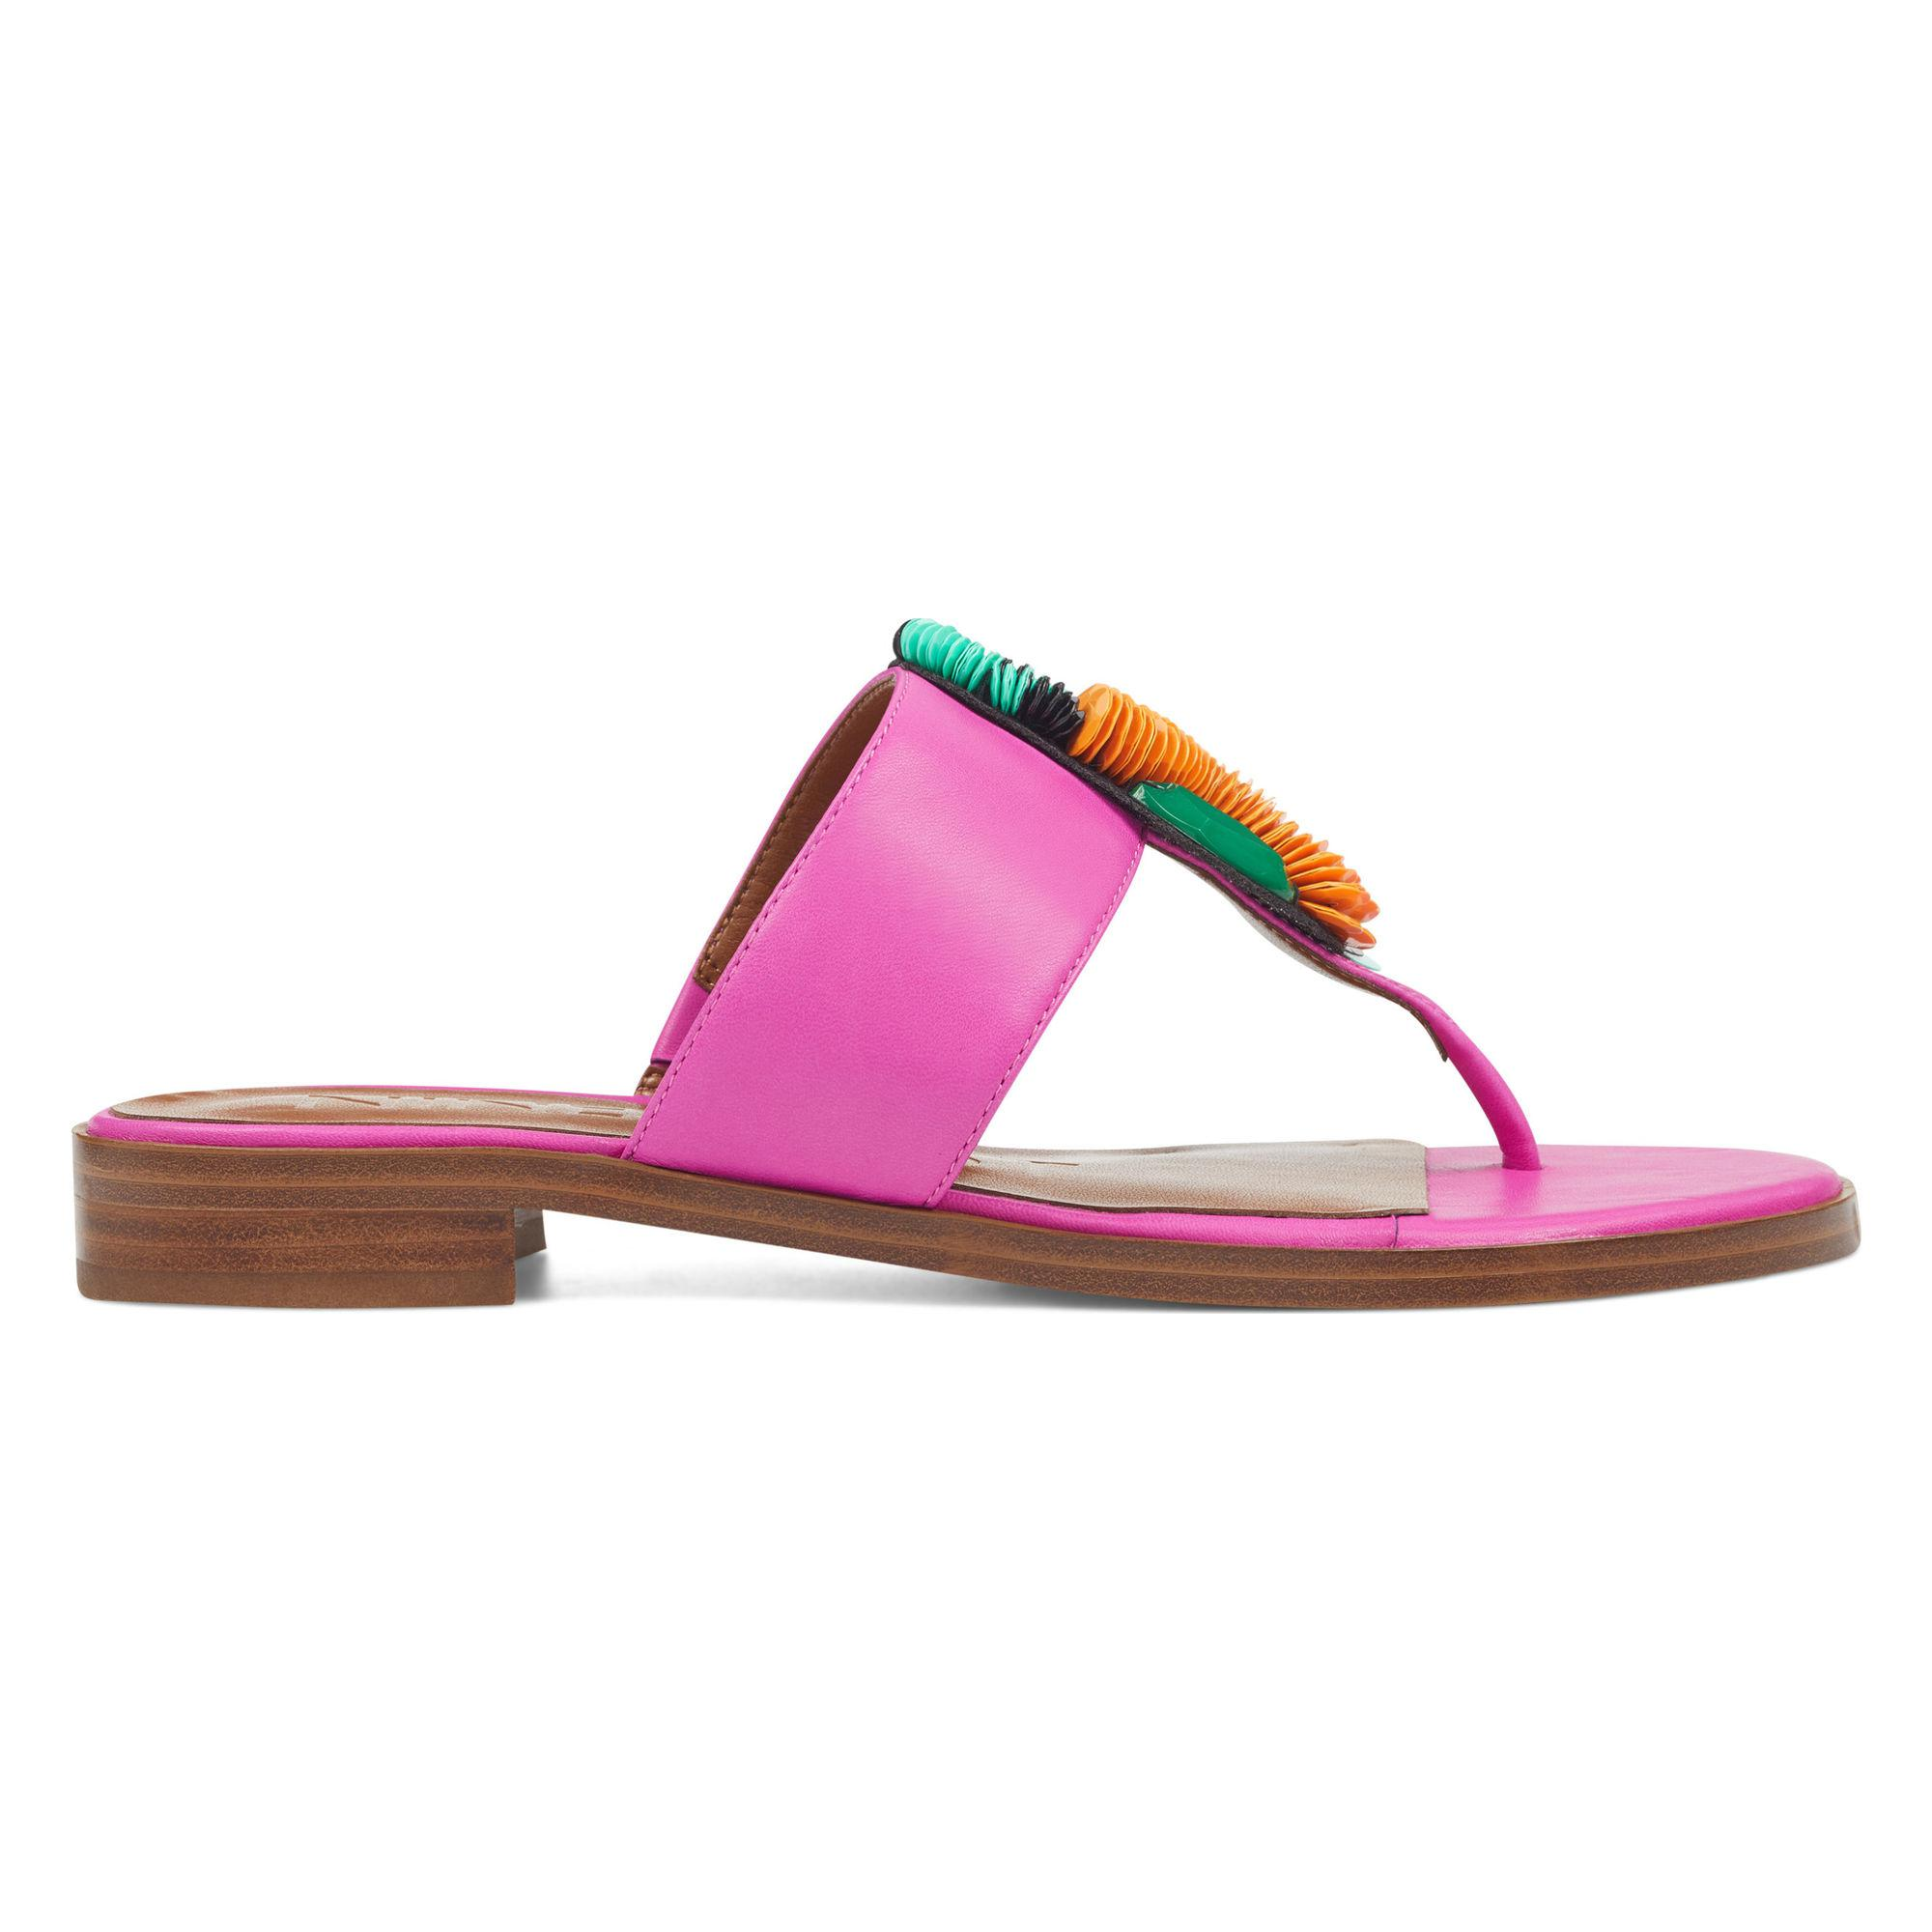 d1ad14695b775e Lyst - Nine West Roseriver Thong Sandals in Pink